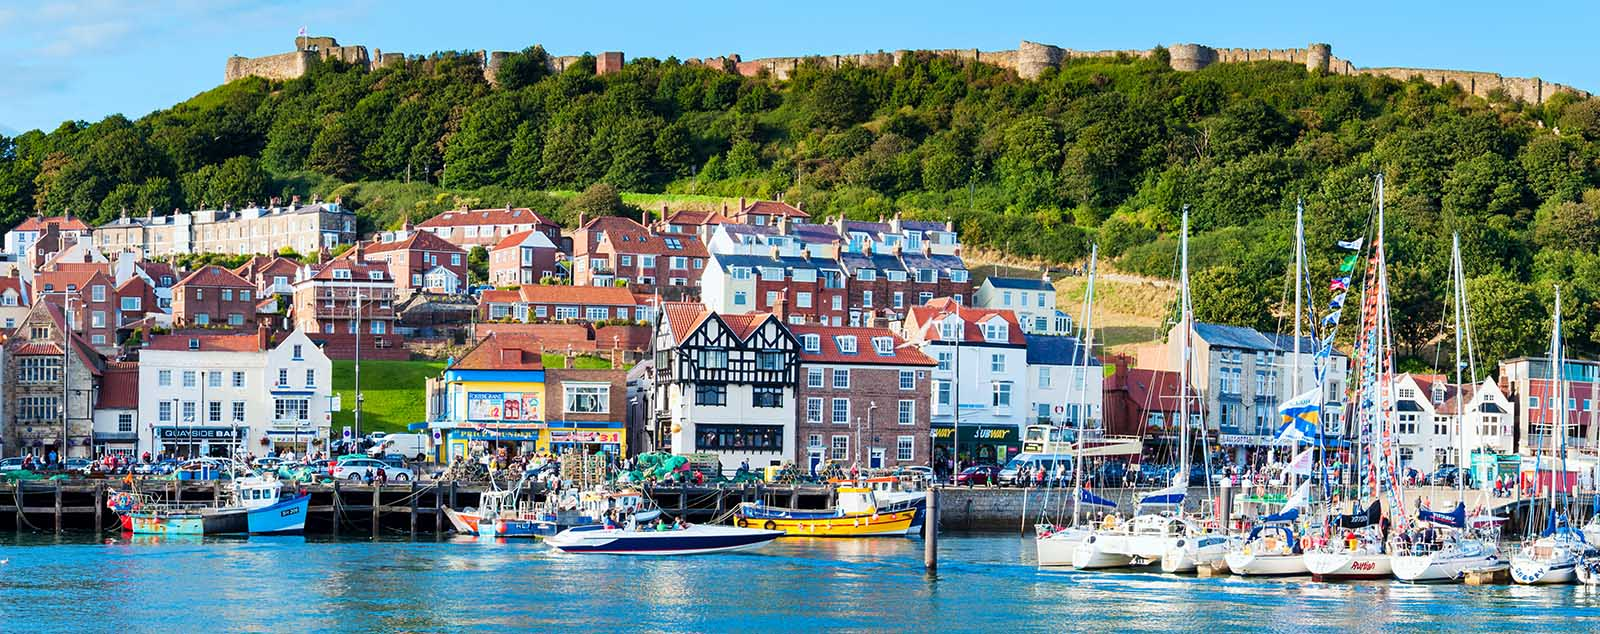 Scarborough seafront, boats are moored in the harbour, old town houses stand at the foot of the cliff which is topped by the ruins of the castle